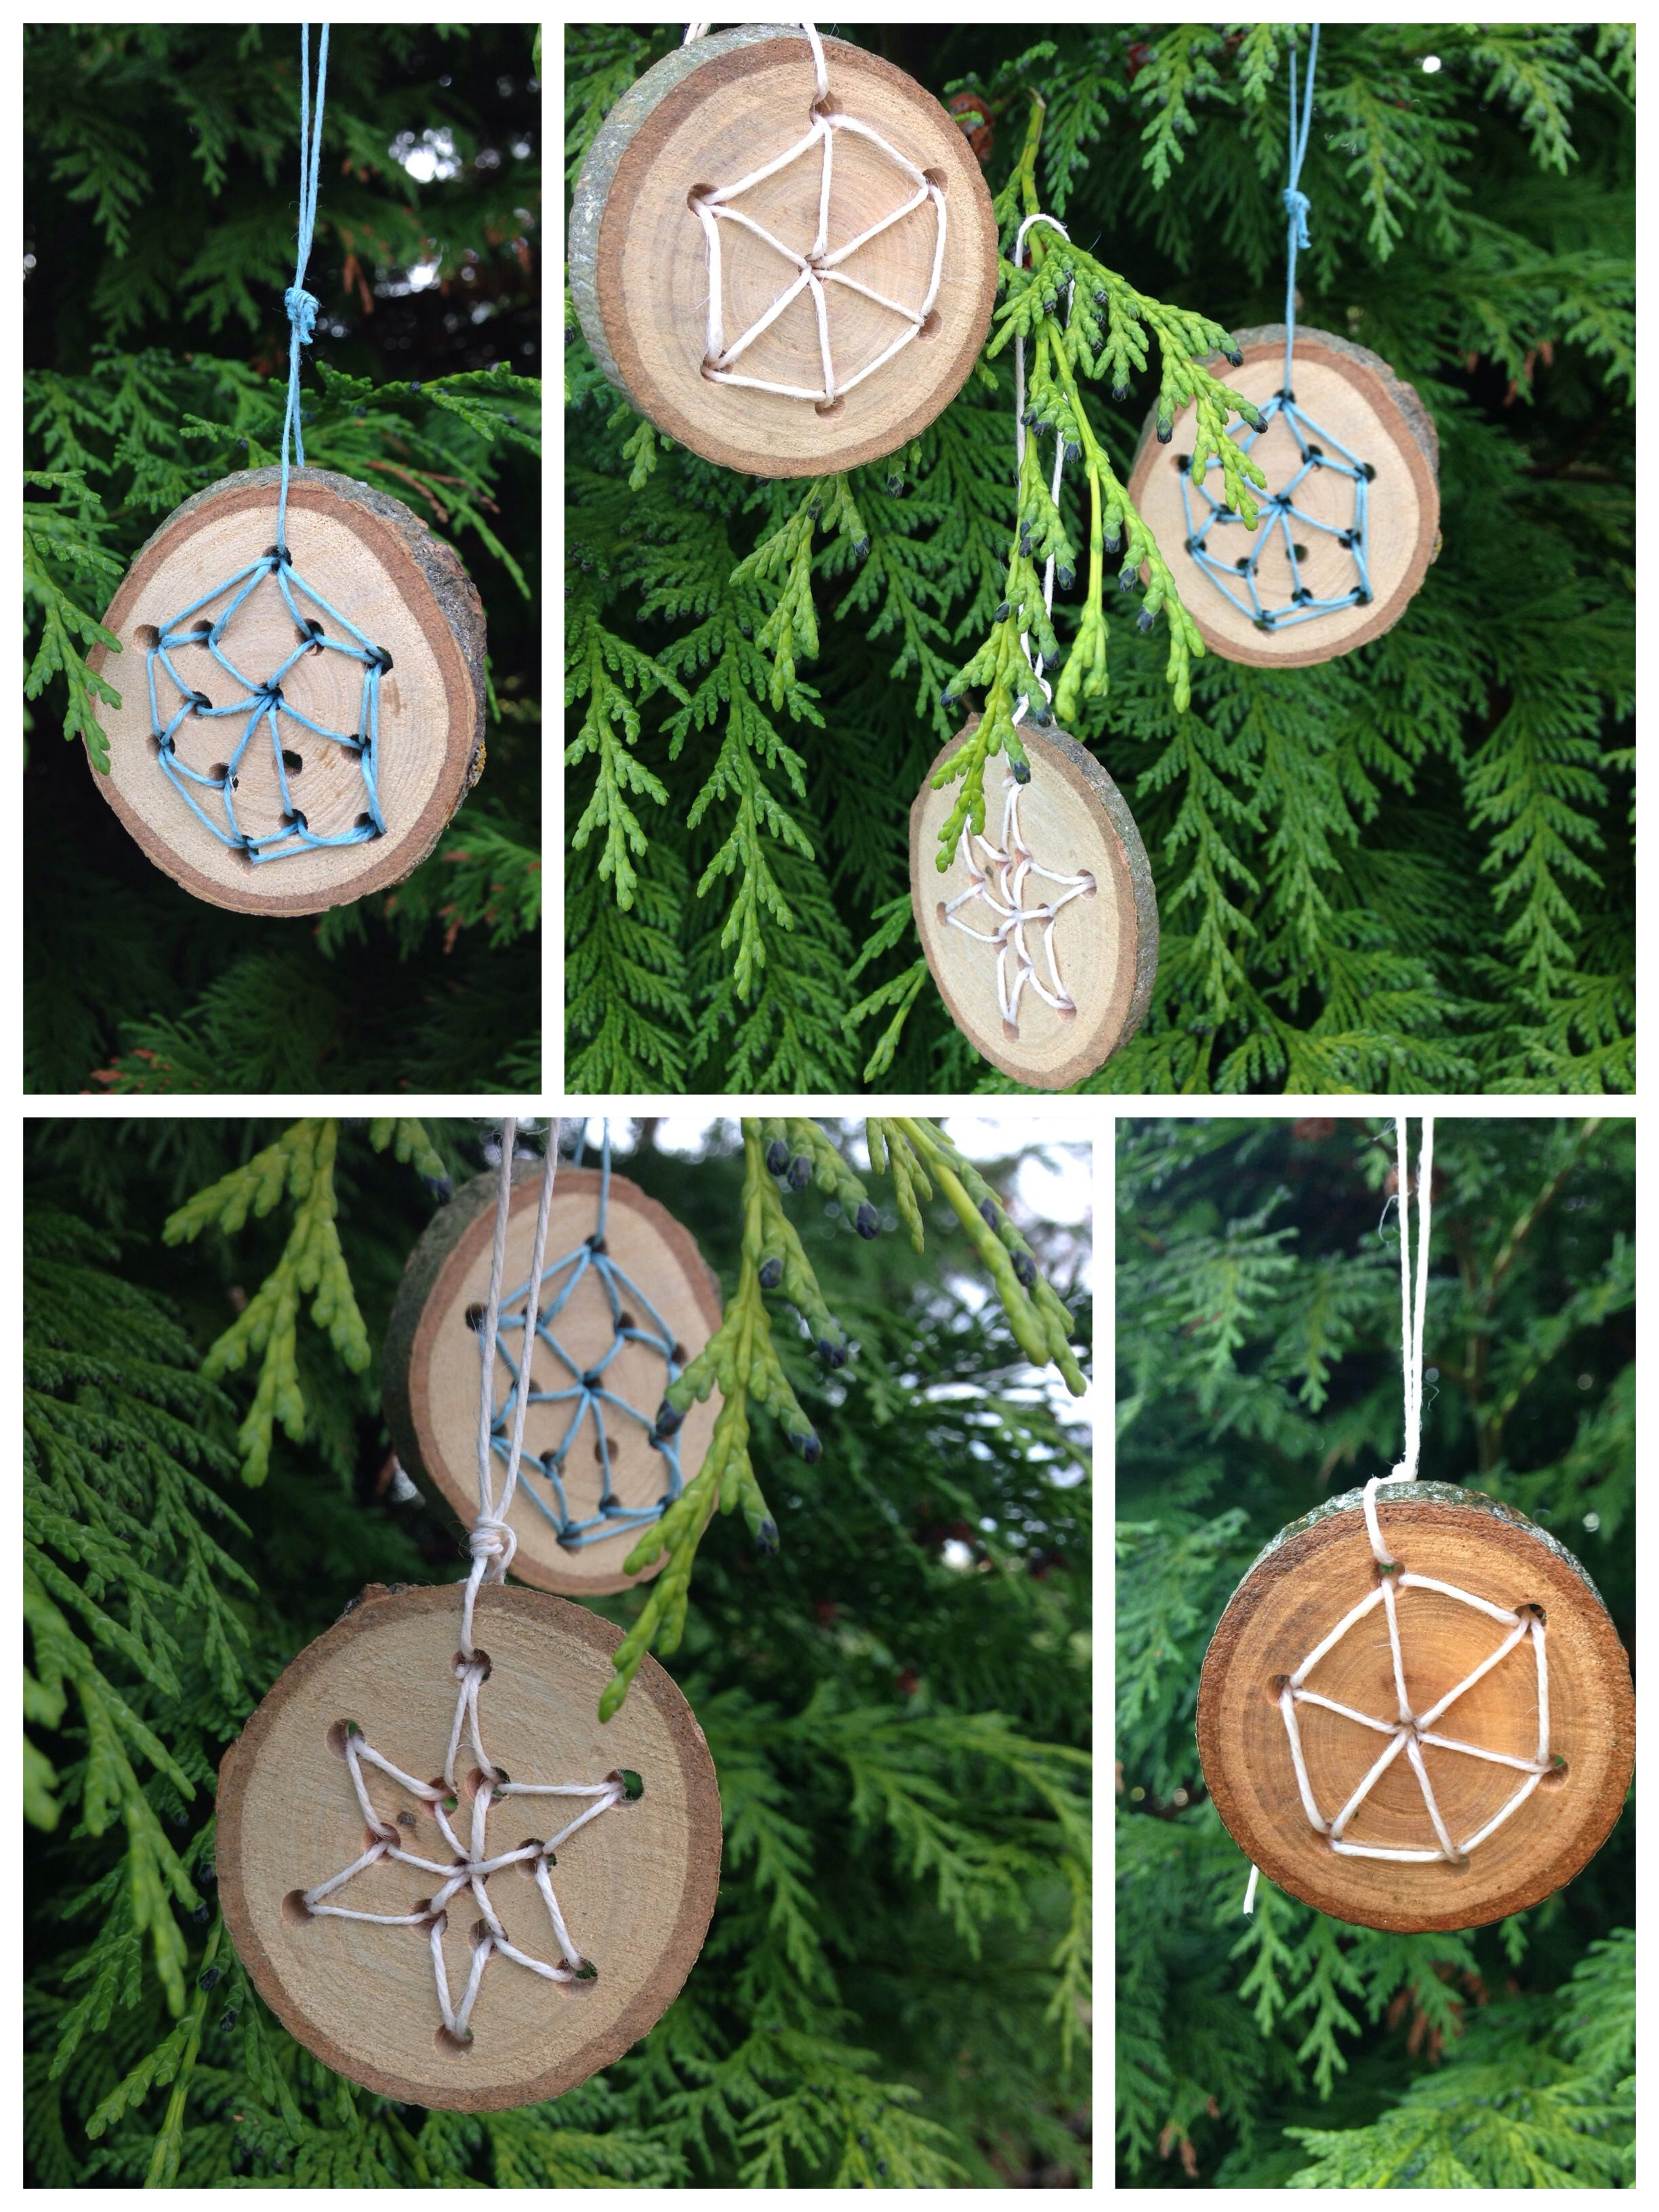 Bauen Mit Holz Grundschule Weaving Wood Cookie Snowflakes Christmas Forest School